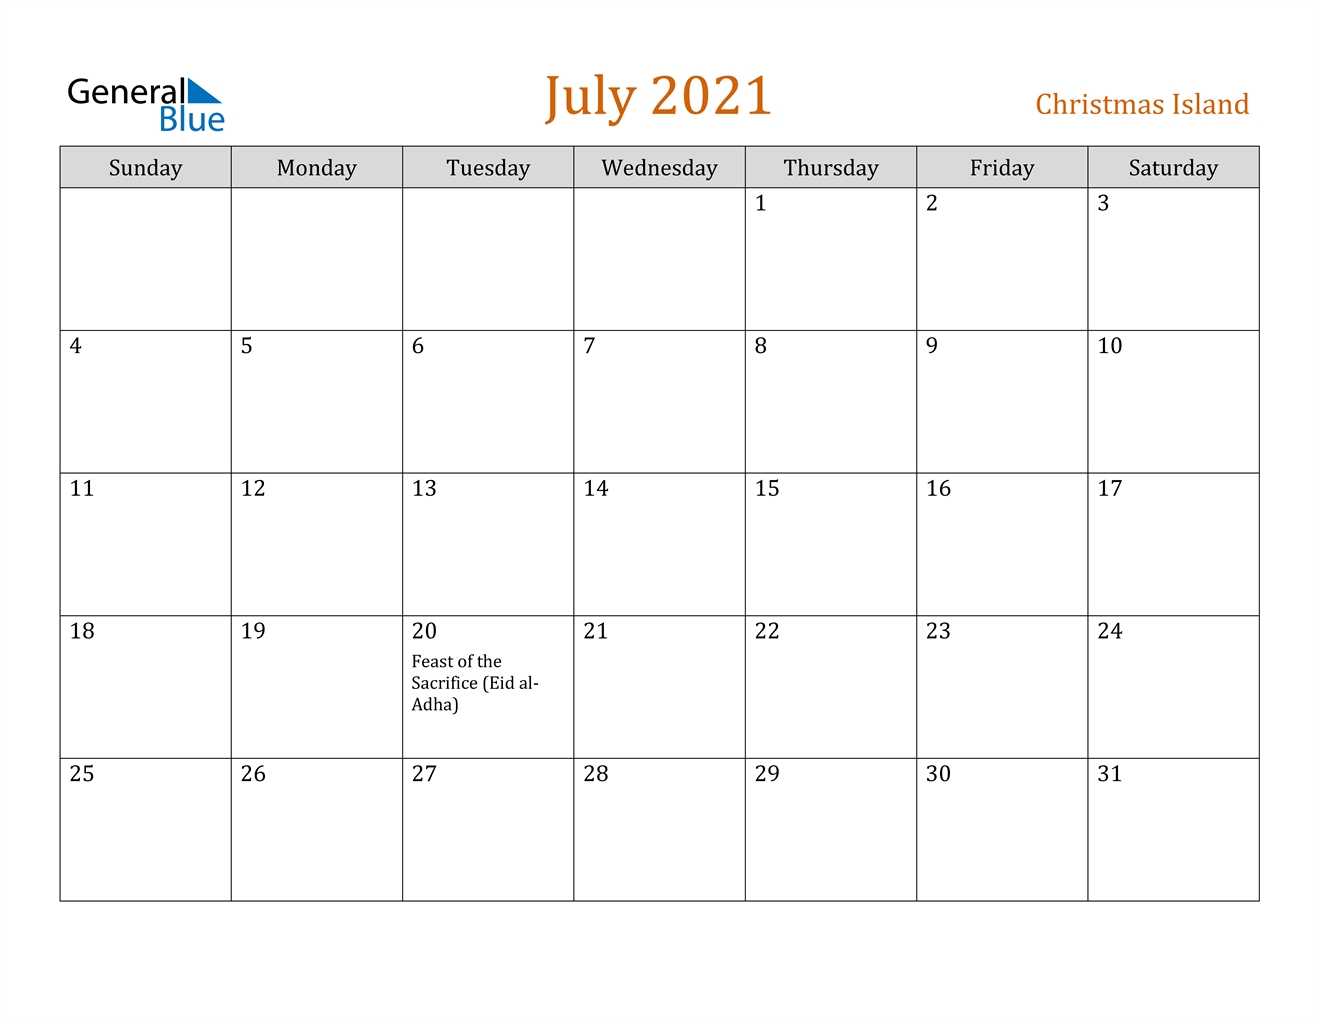 July 2021 Calendar - Christmas Island Calendar For The Month Of July 2021